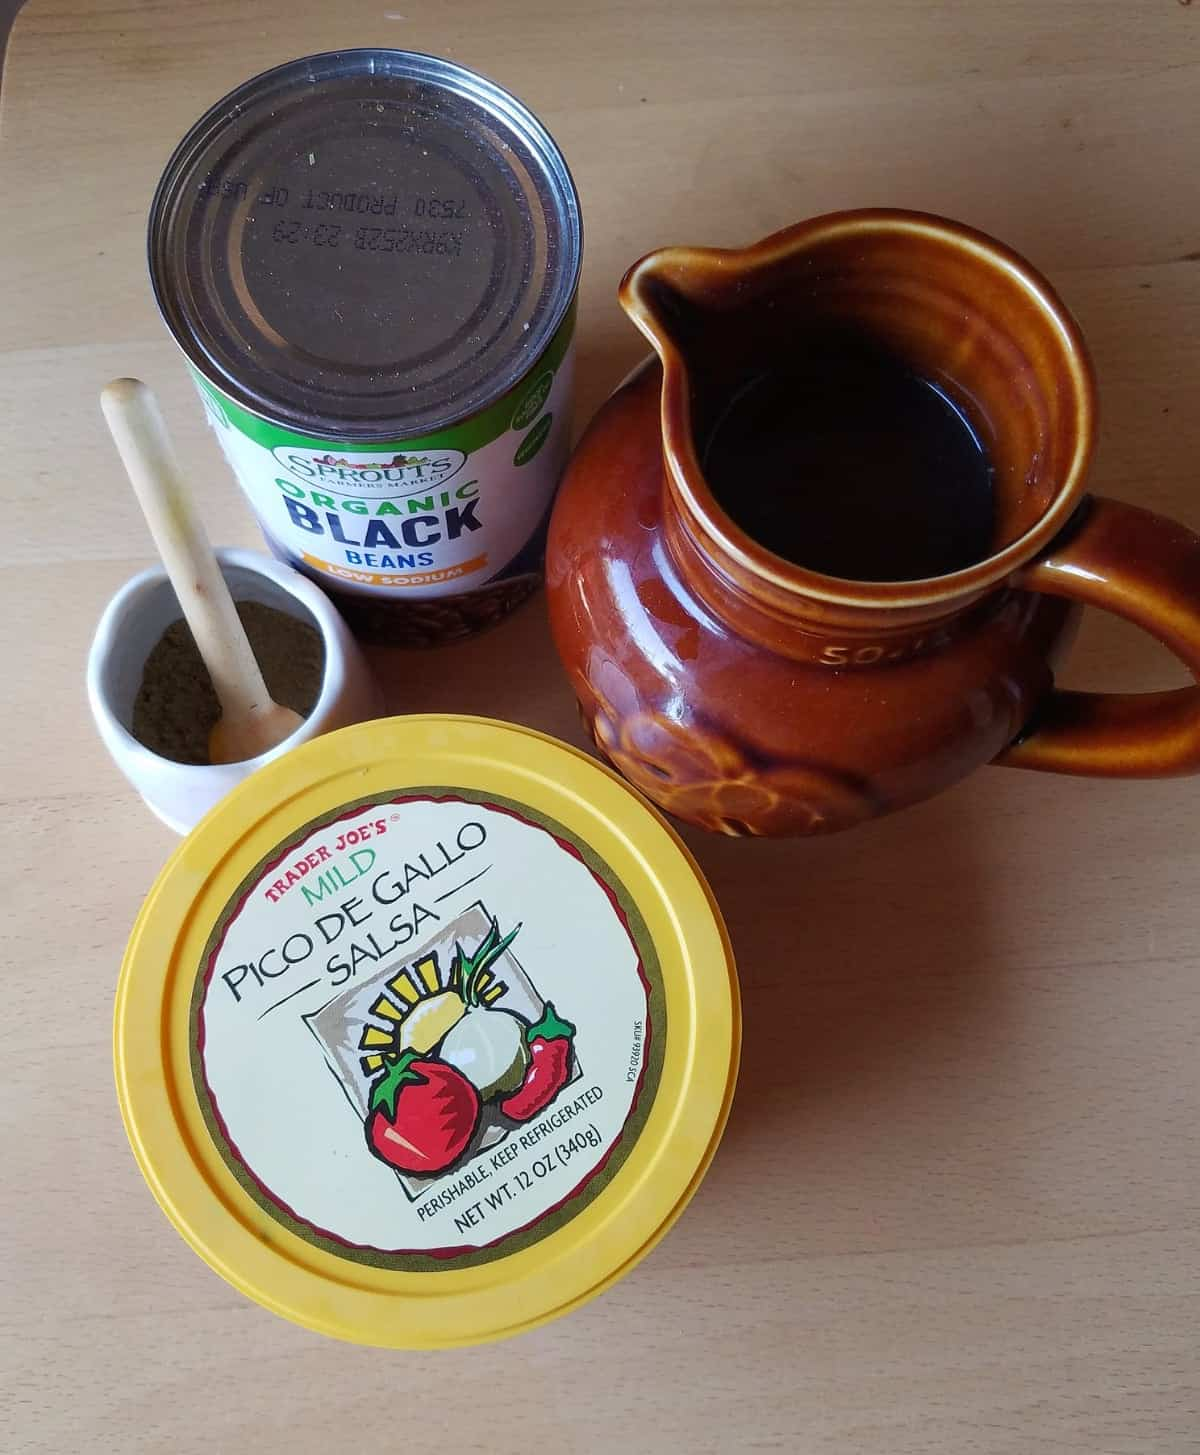 Can of black beans, red wine, pico de gallo and spices for making black bean soup.